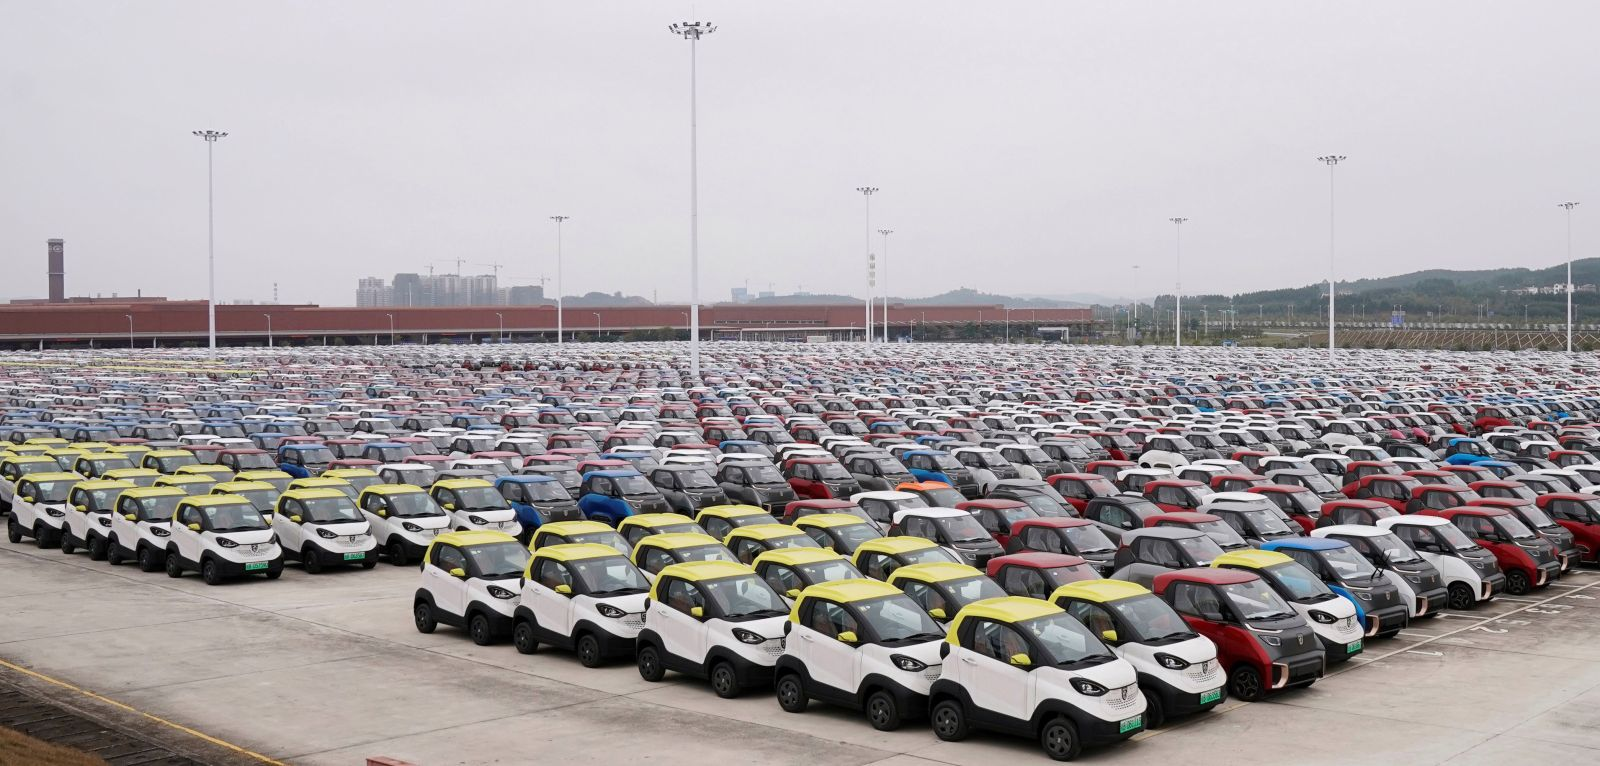 qz.com - Michael J. Coren - Researchers have no idea when electric cars are going to take over